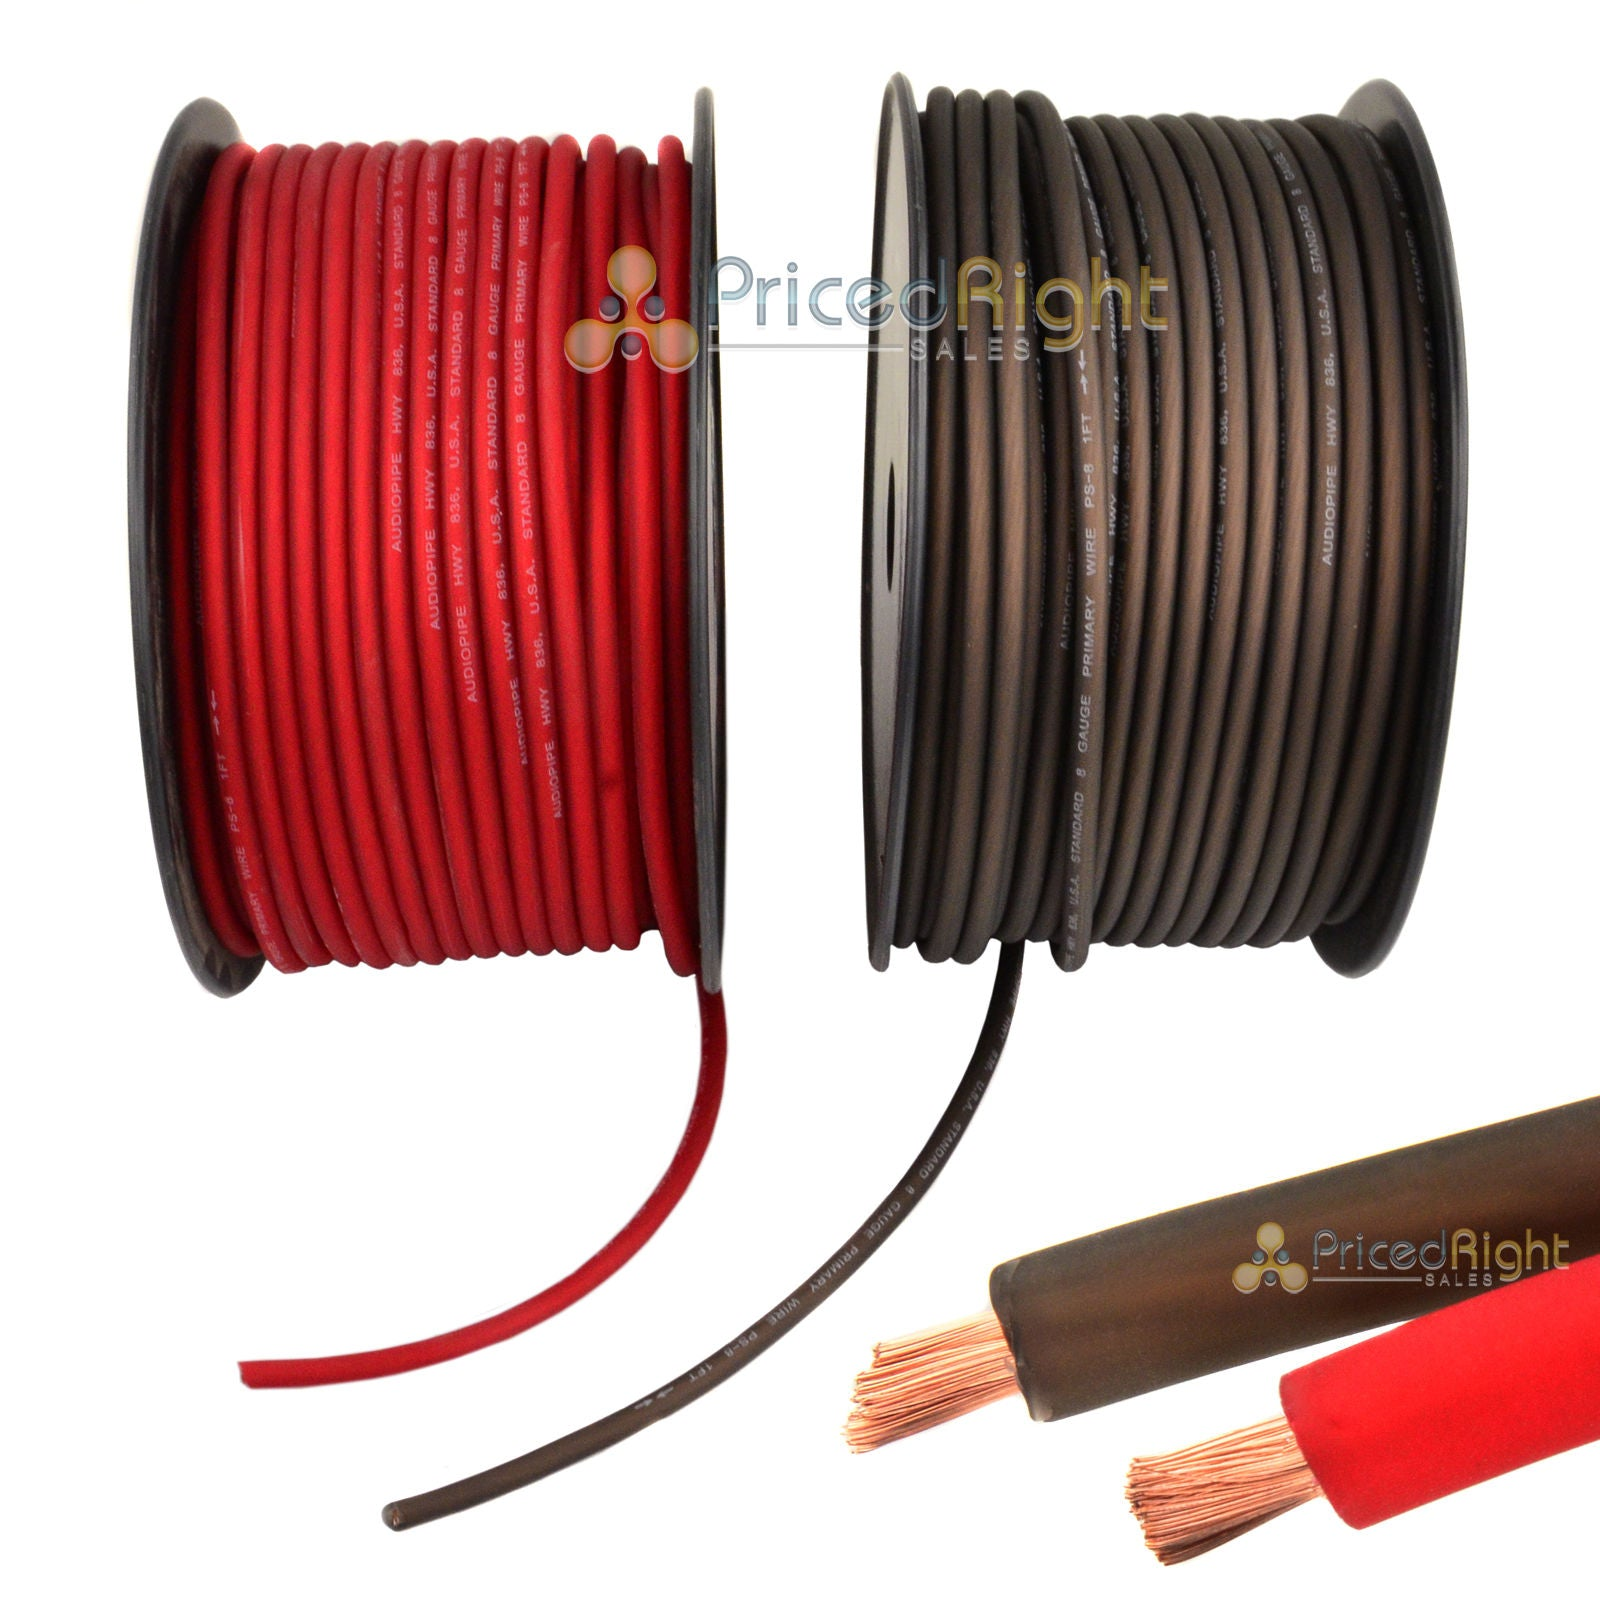 50' Super Flexible 8 Gauge Power & Ground Wire / Cable 25' Red 25 ft Black